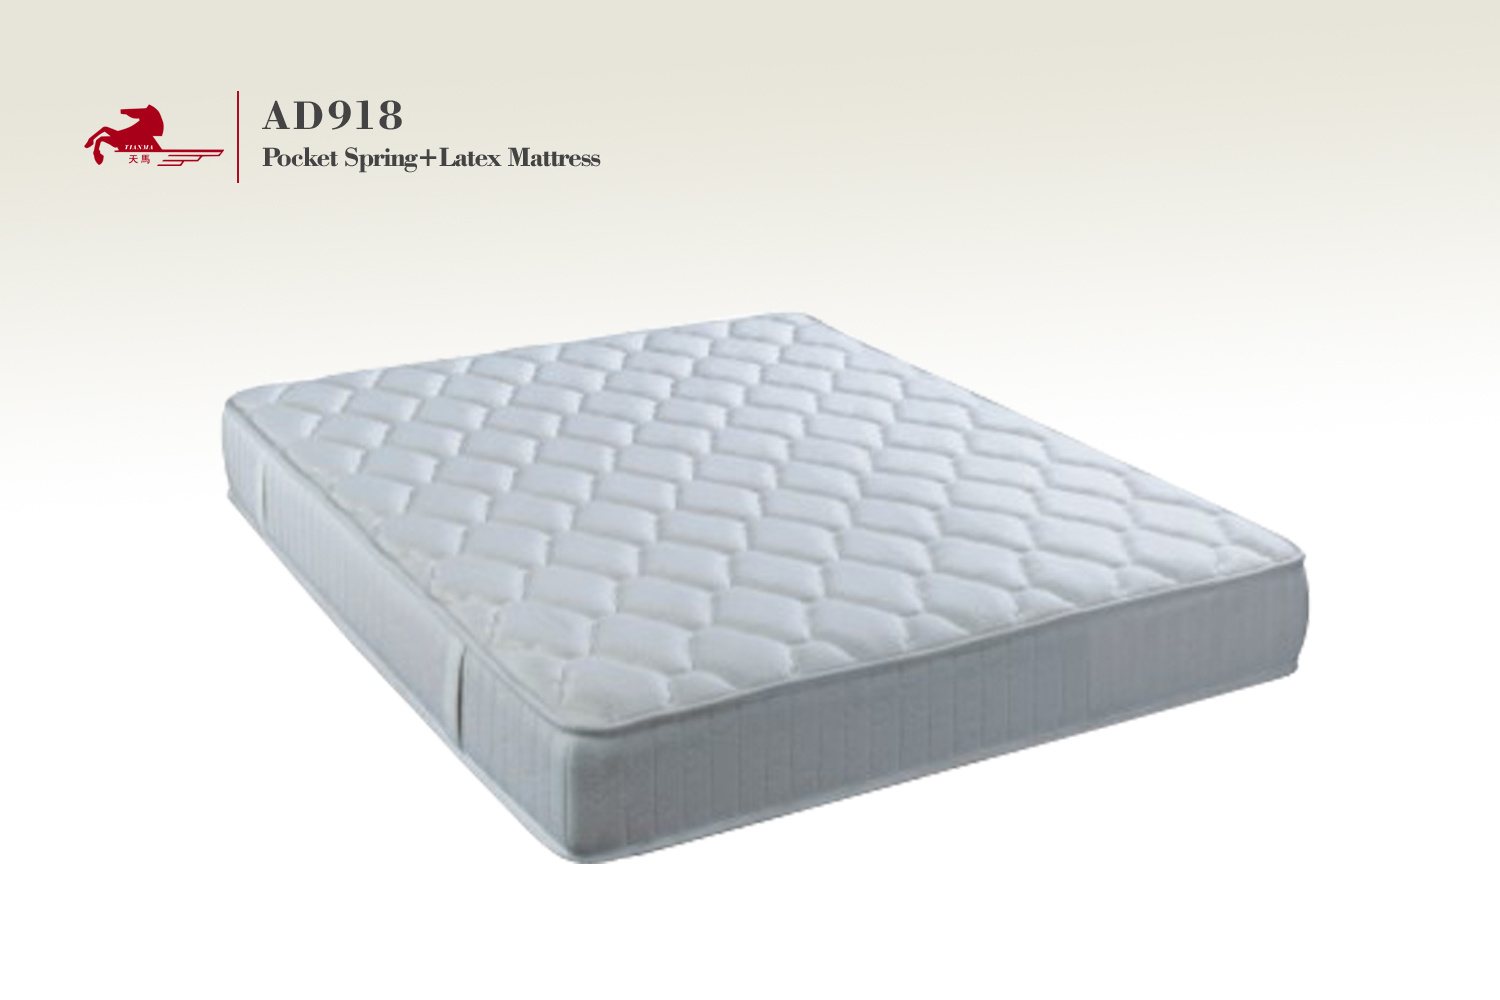 Pocket Spring And Memory Foam Mattress Ad948 Photos Pictures